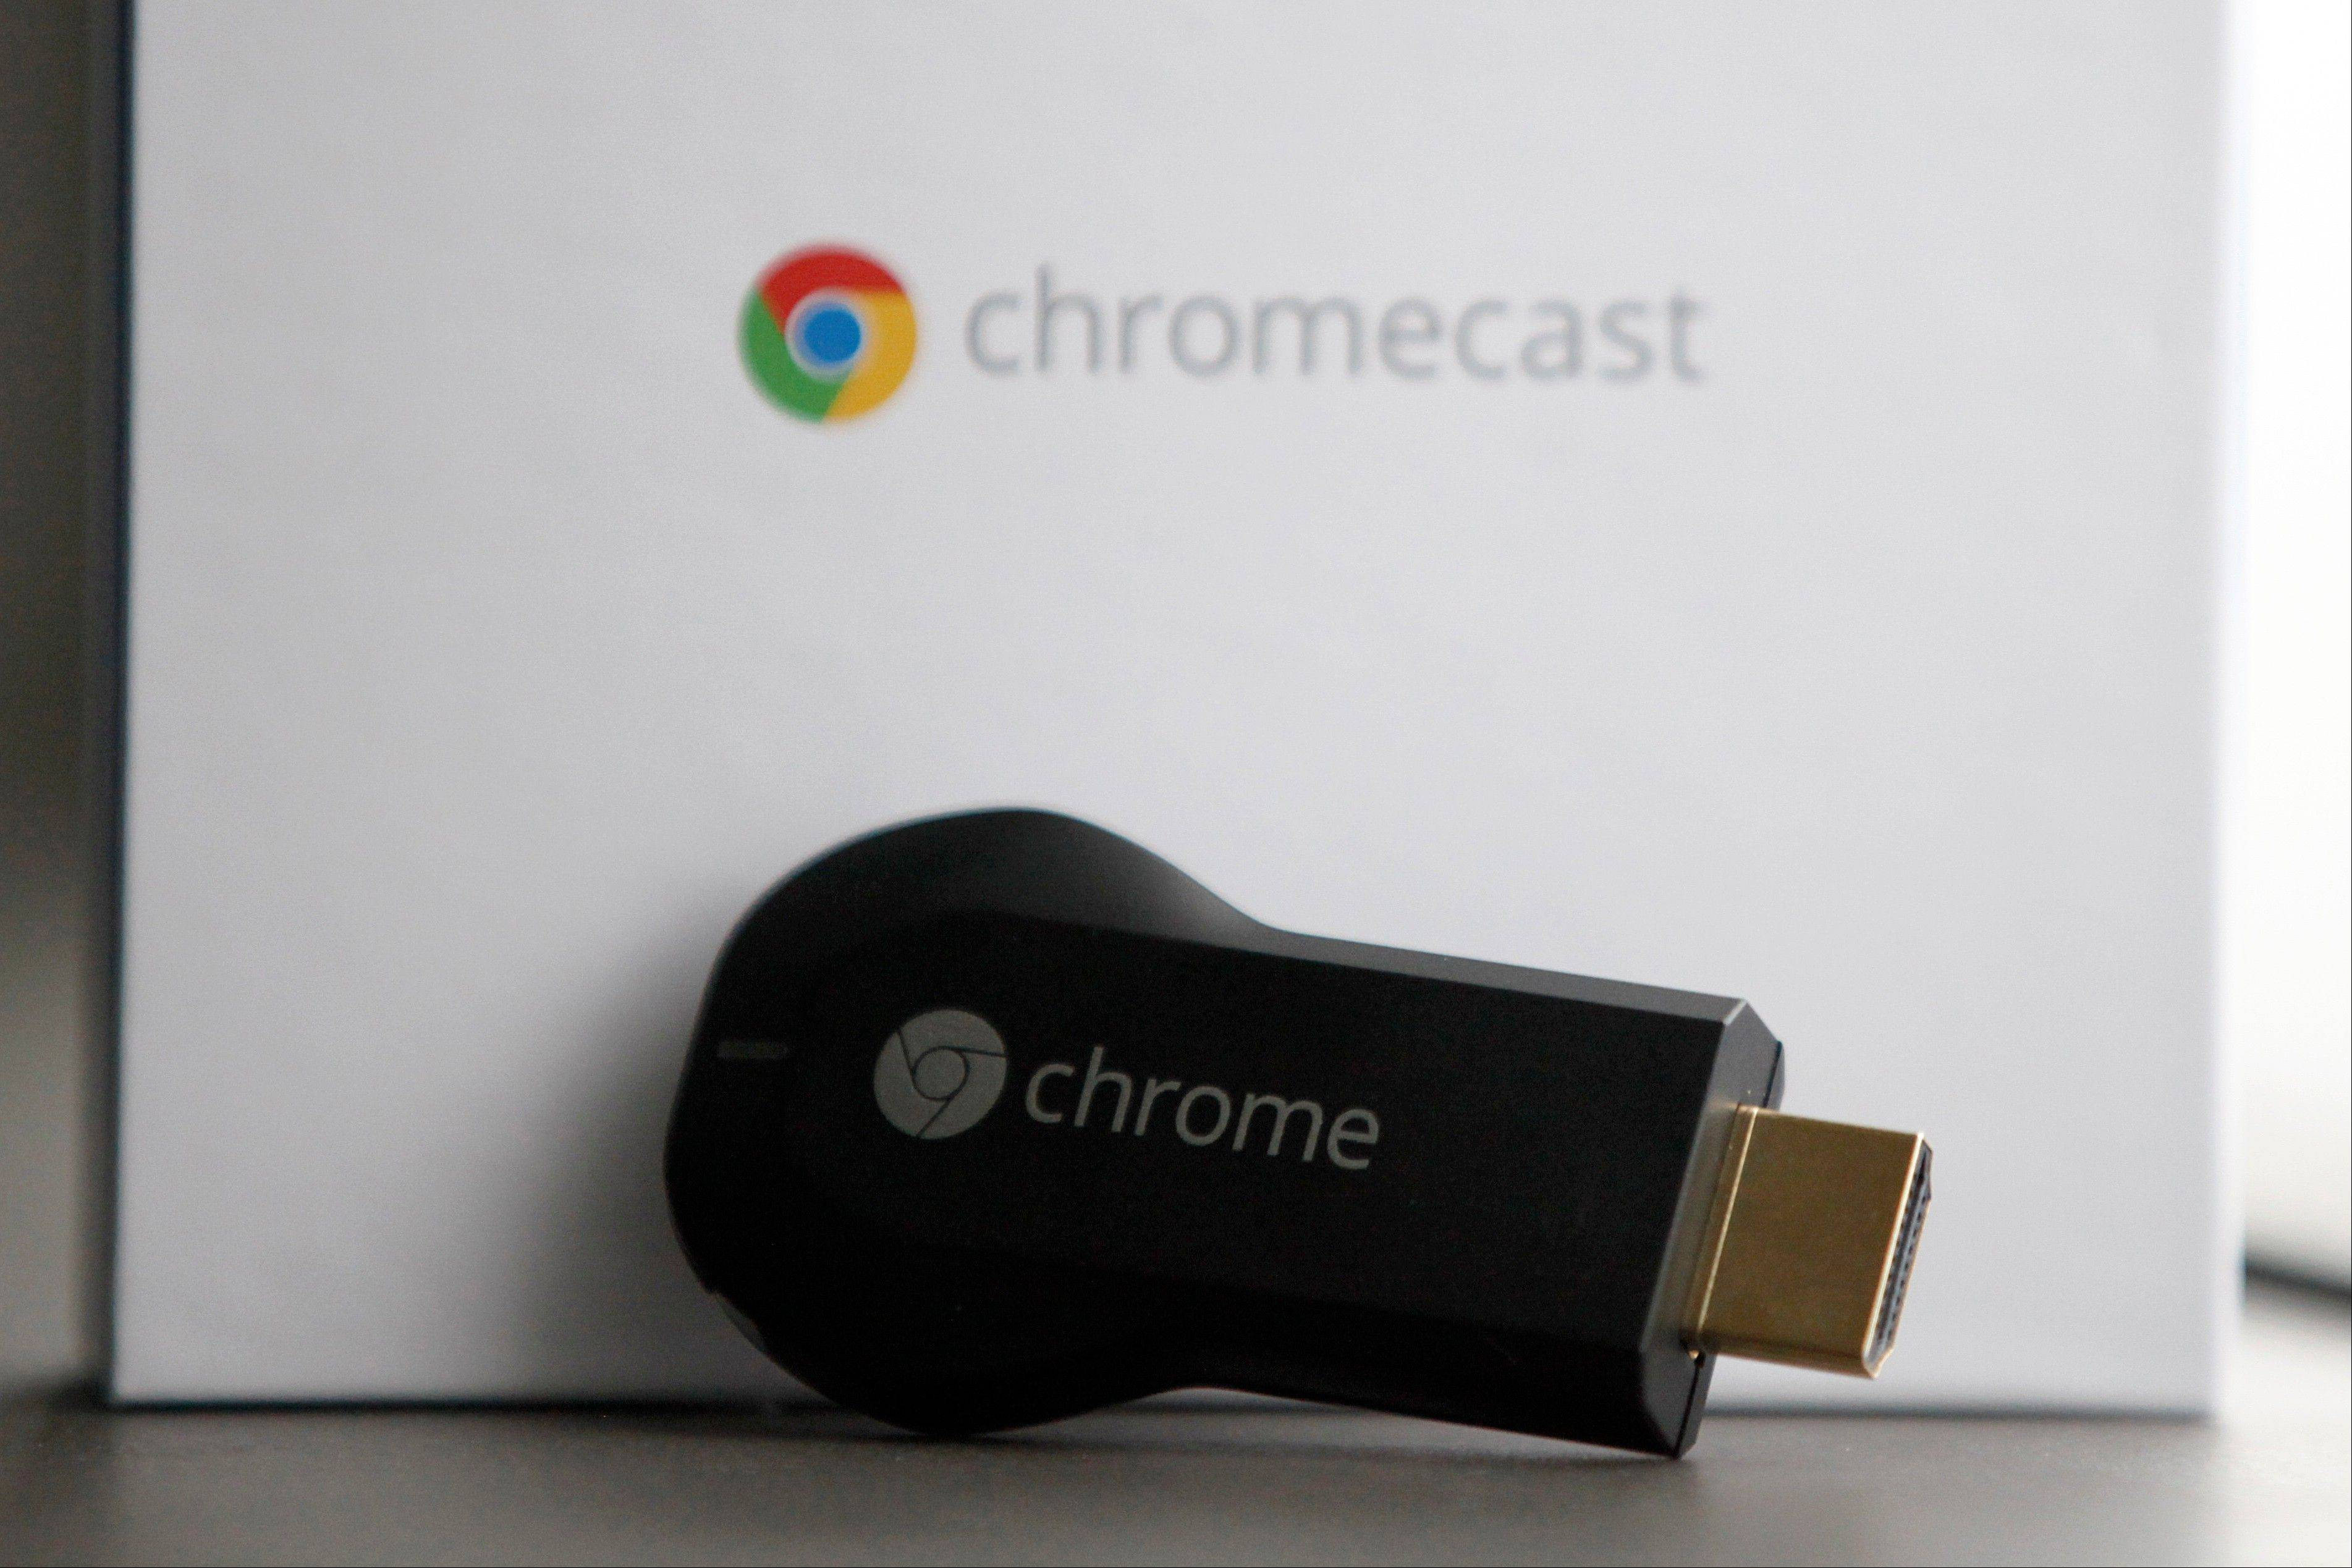 Google's Chromecast, a small device that works wirelessly to stream video and music to a high-definition TV, is controlled by a smartphone or tablet computer and lets the user connect and view content from services like YouTube and Netflix via Wi-Fi.